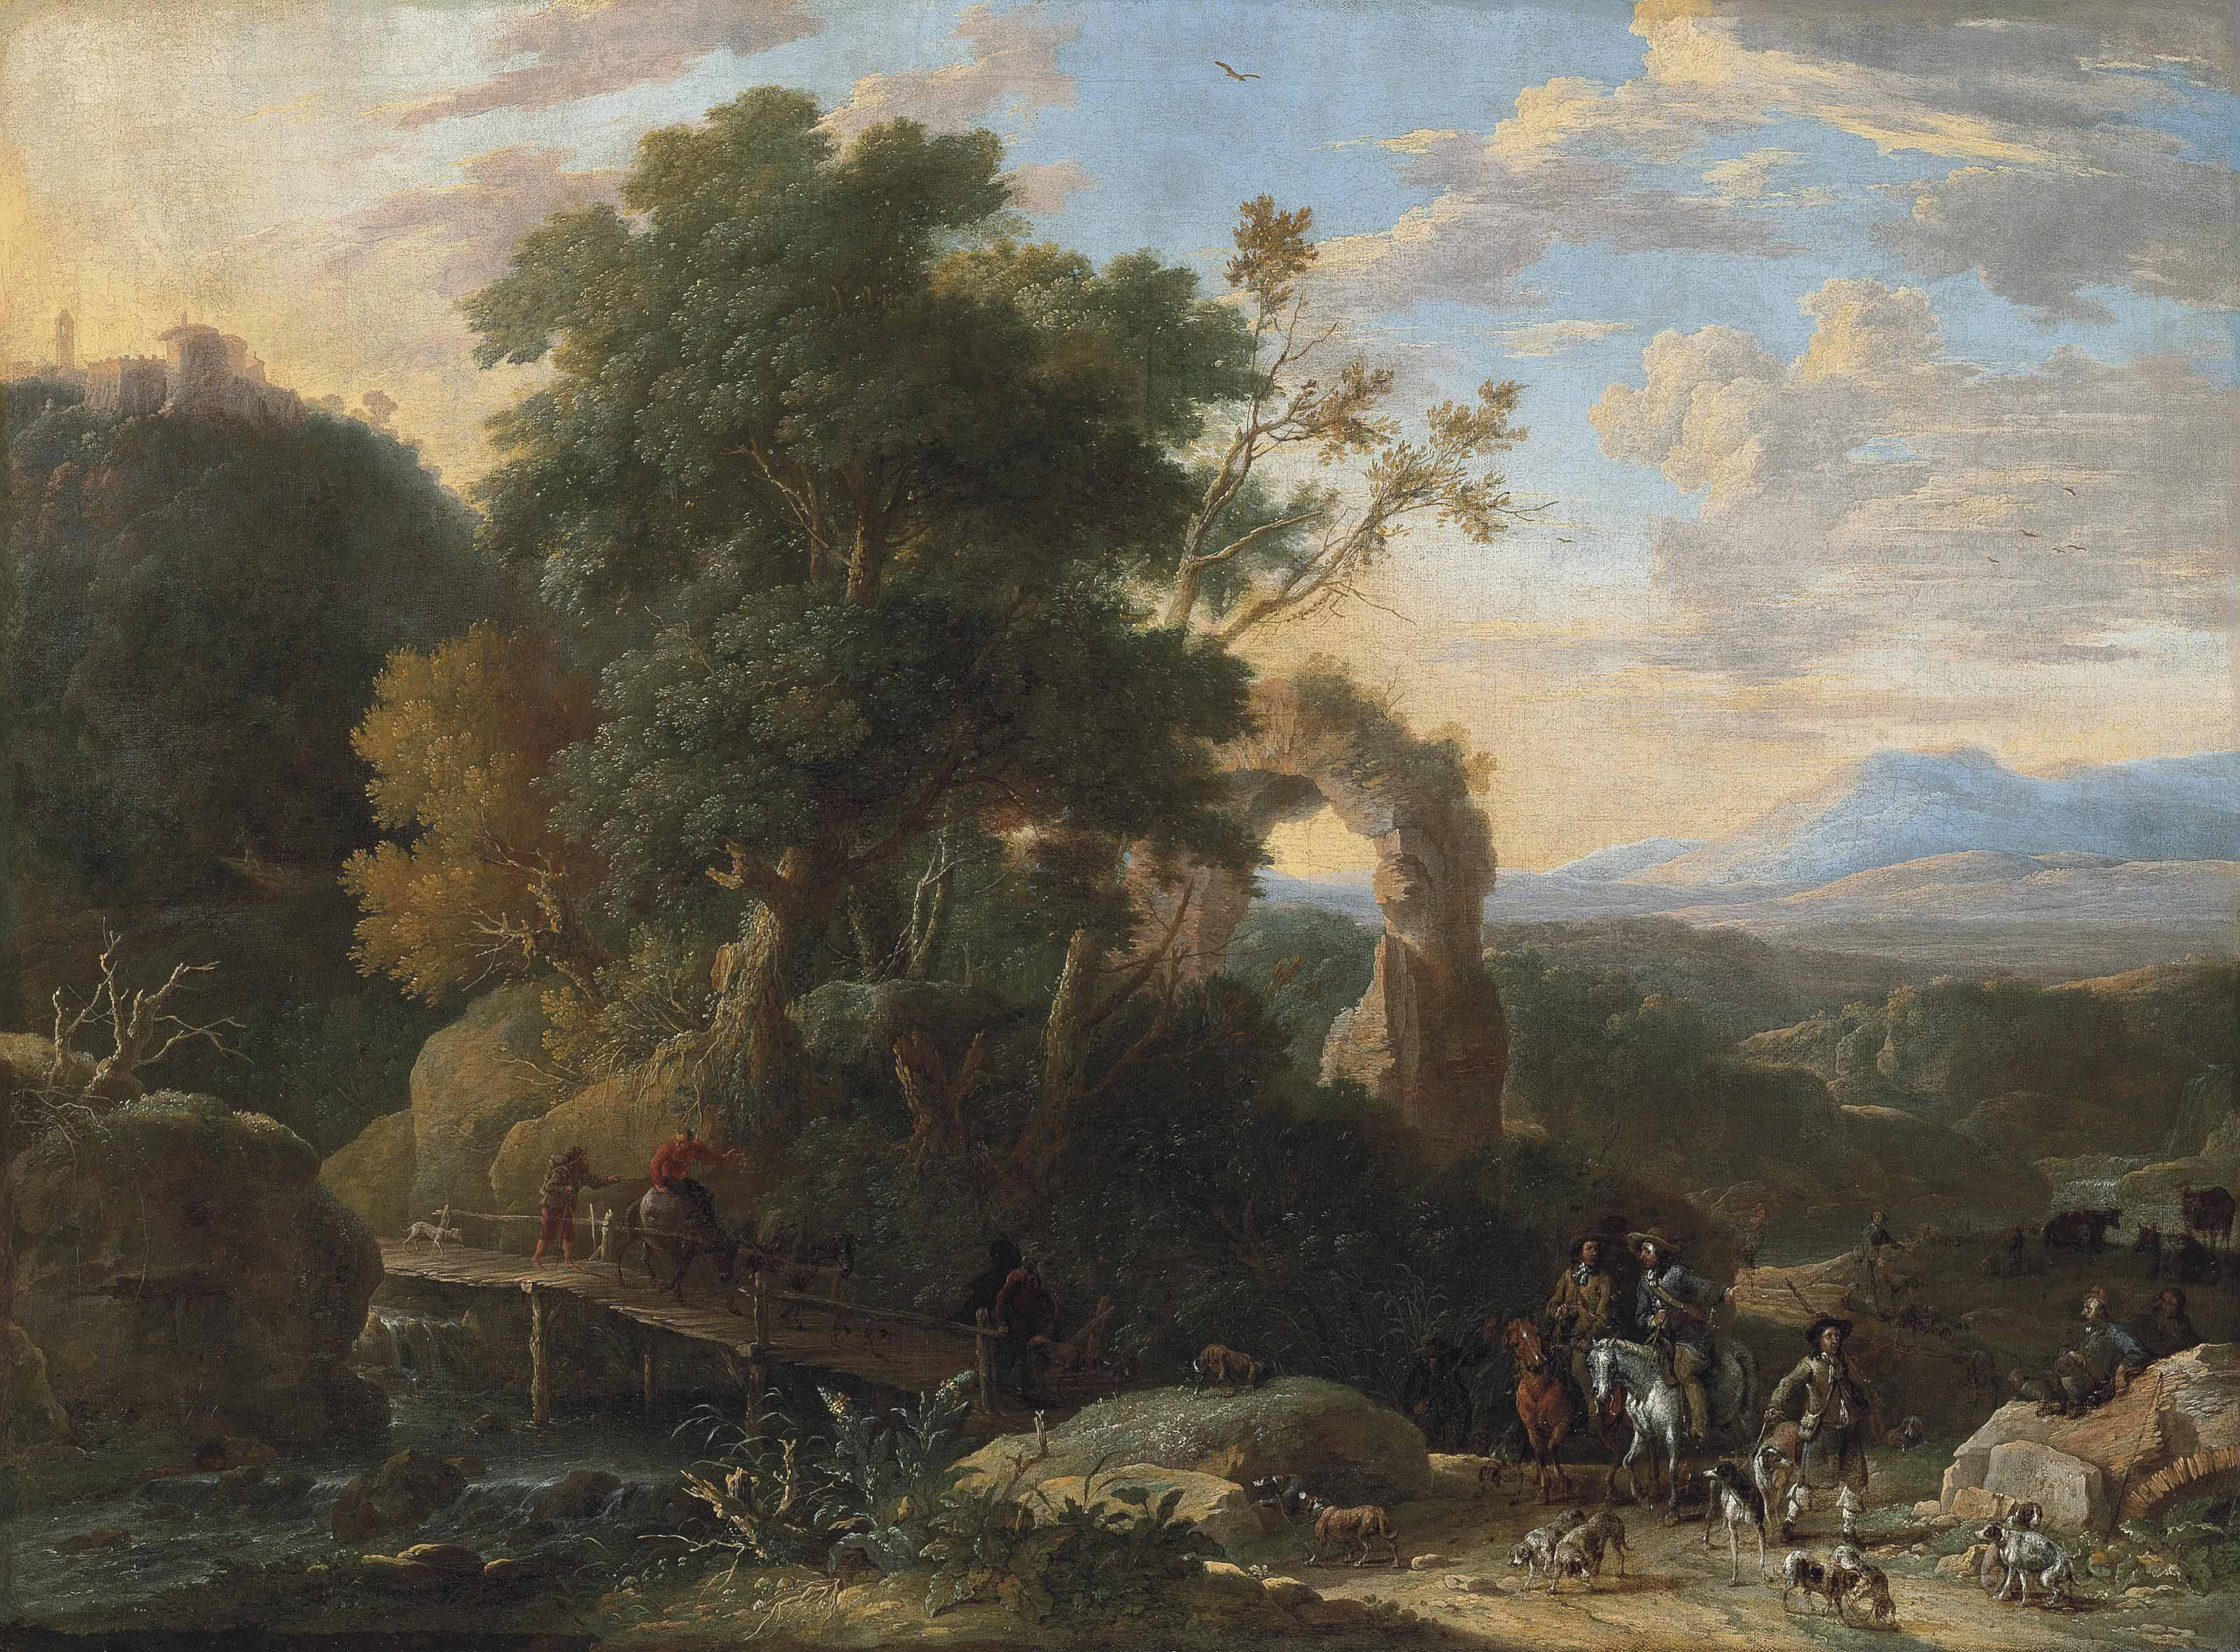 A wooded, river landscape with ruins, a hunting party in the right foreground